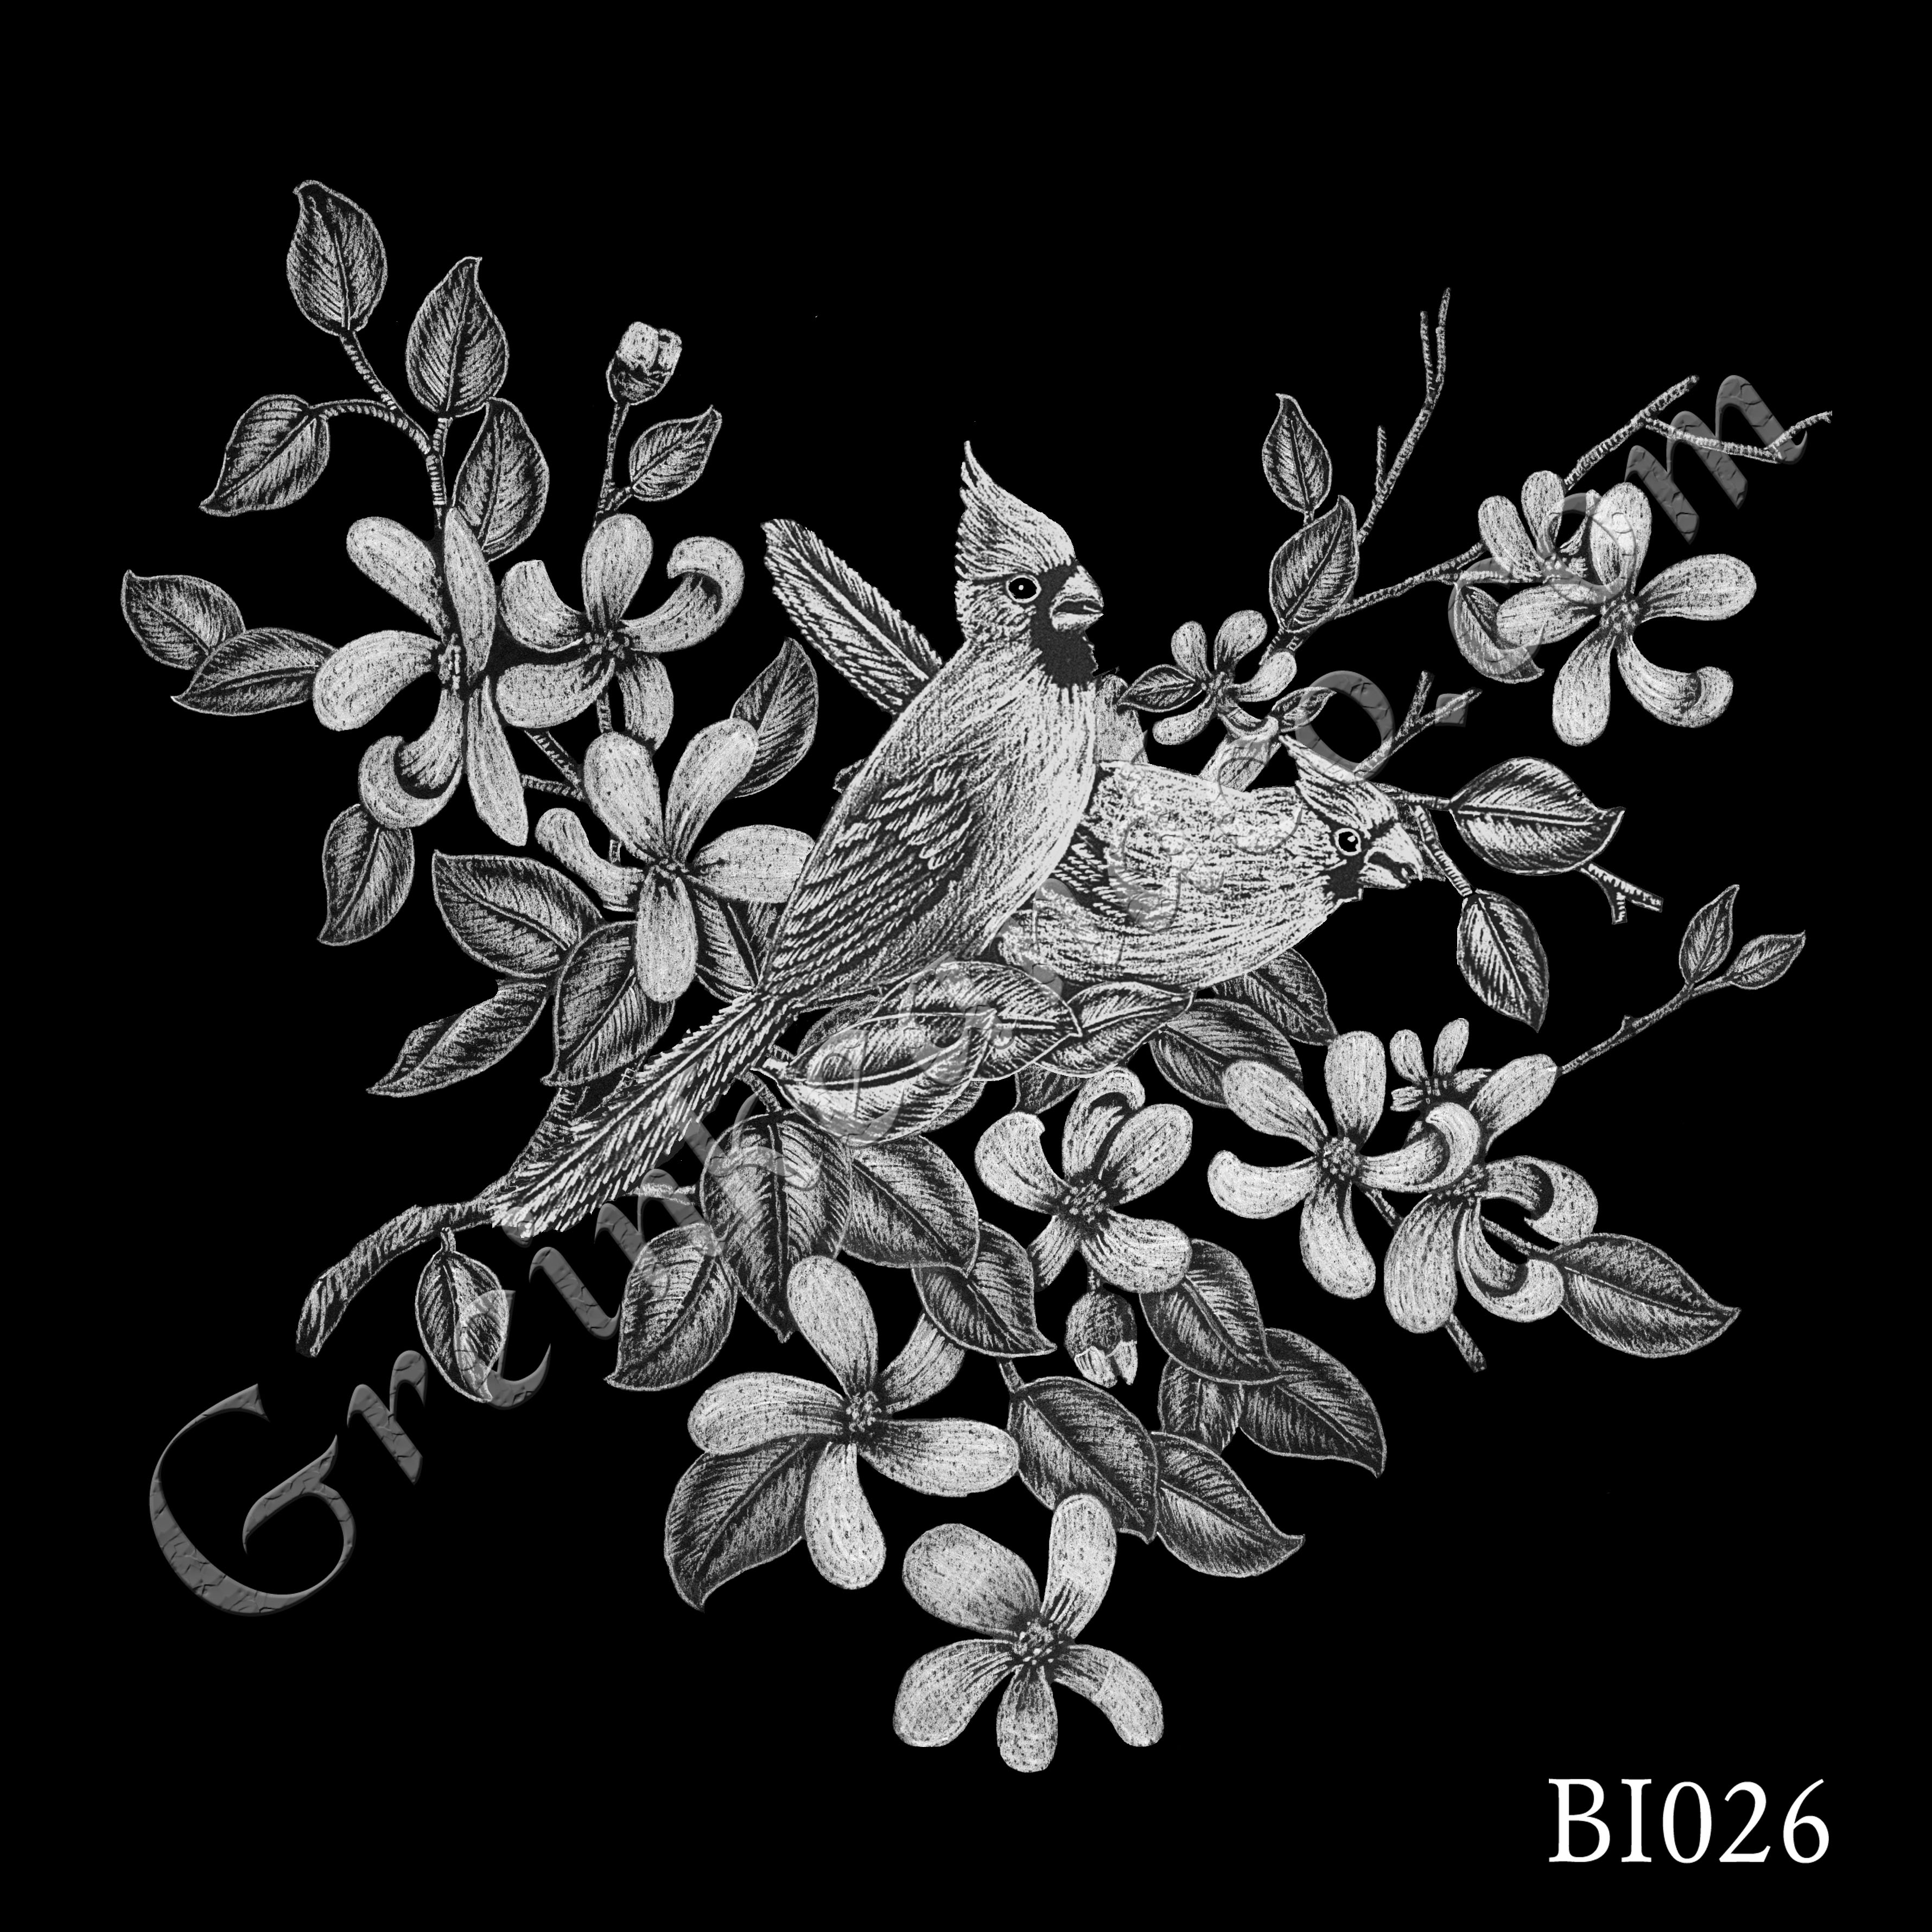 BI026 - Cardinals & Apple Blossoms